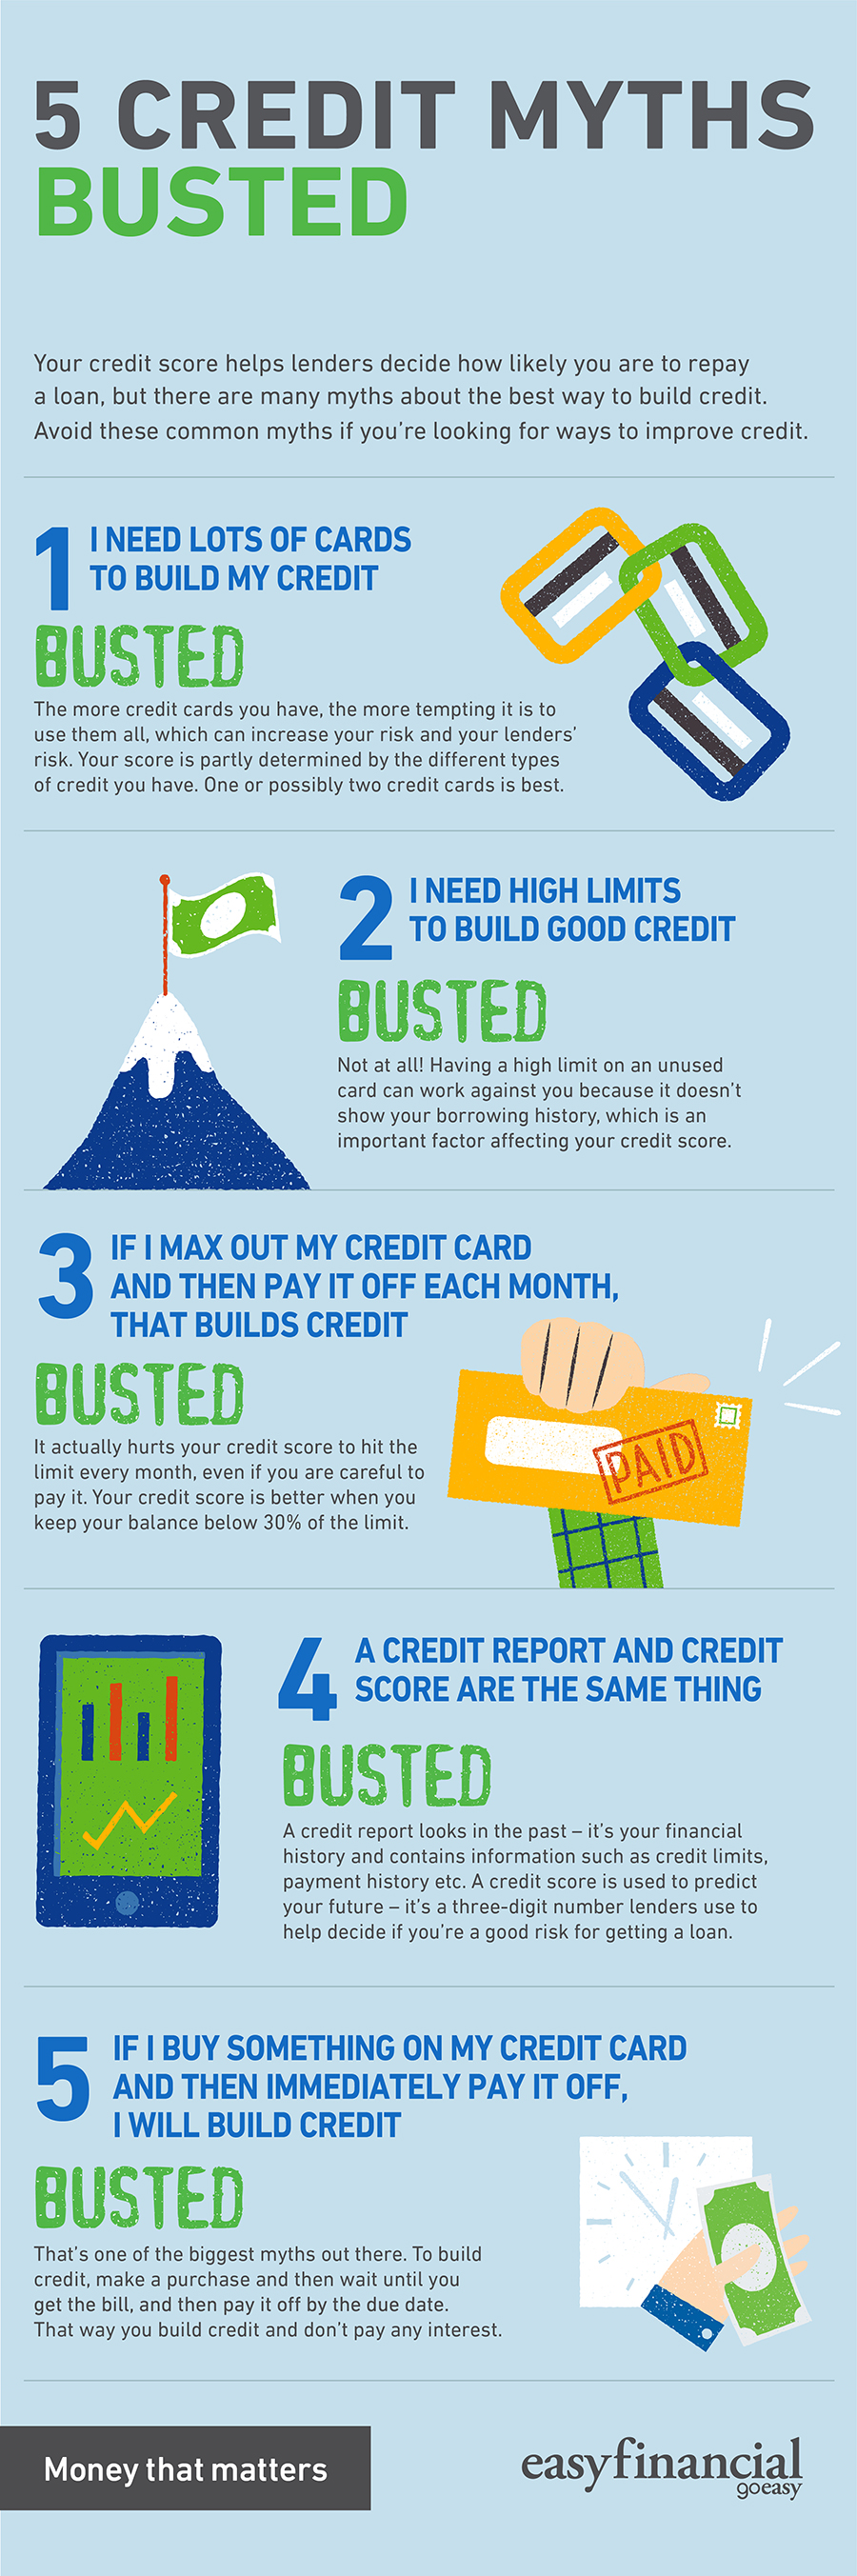 myths about credit score busted